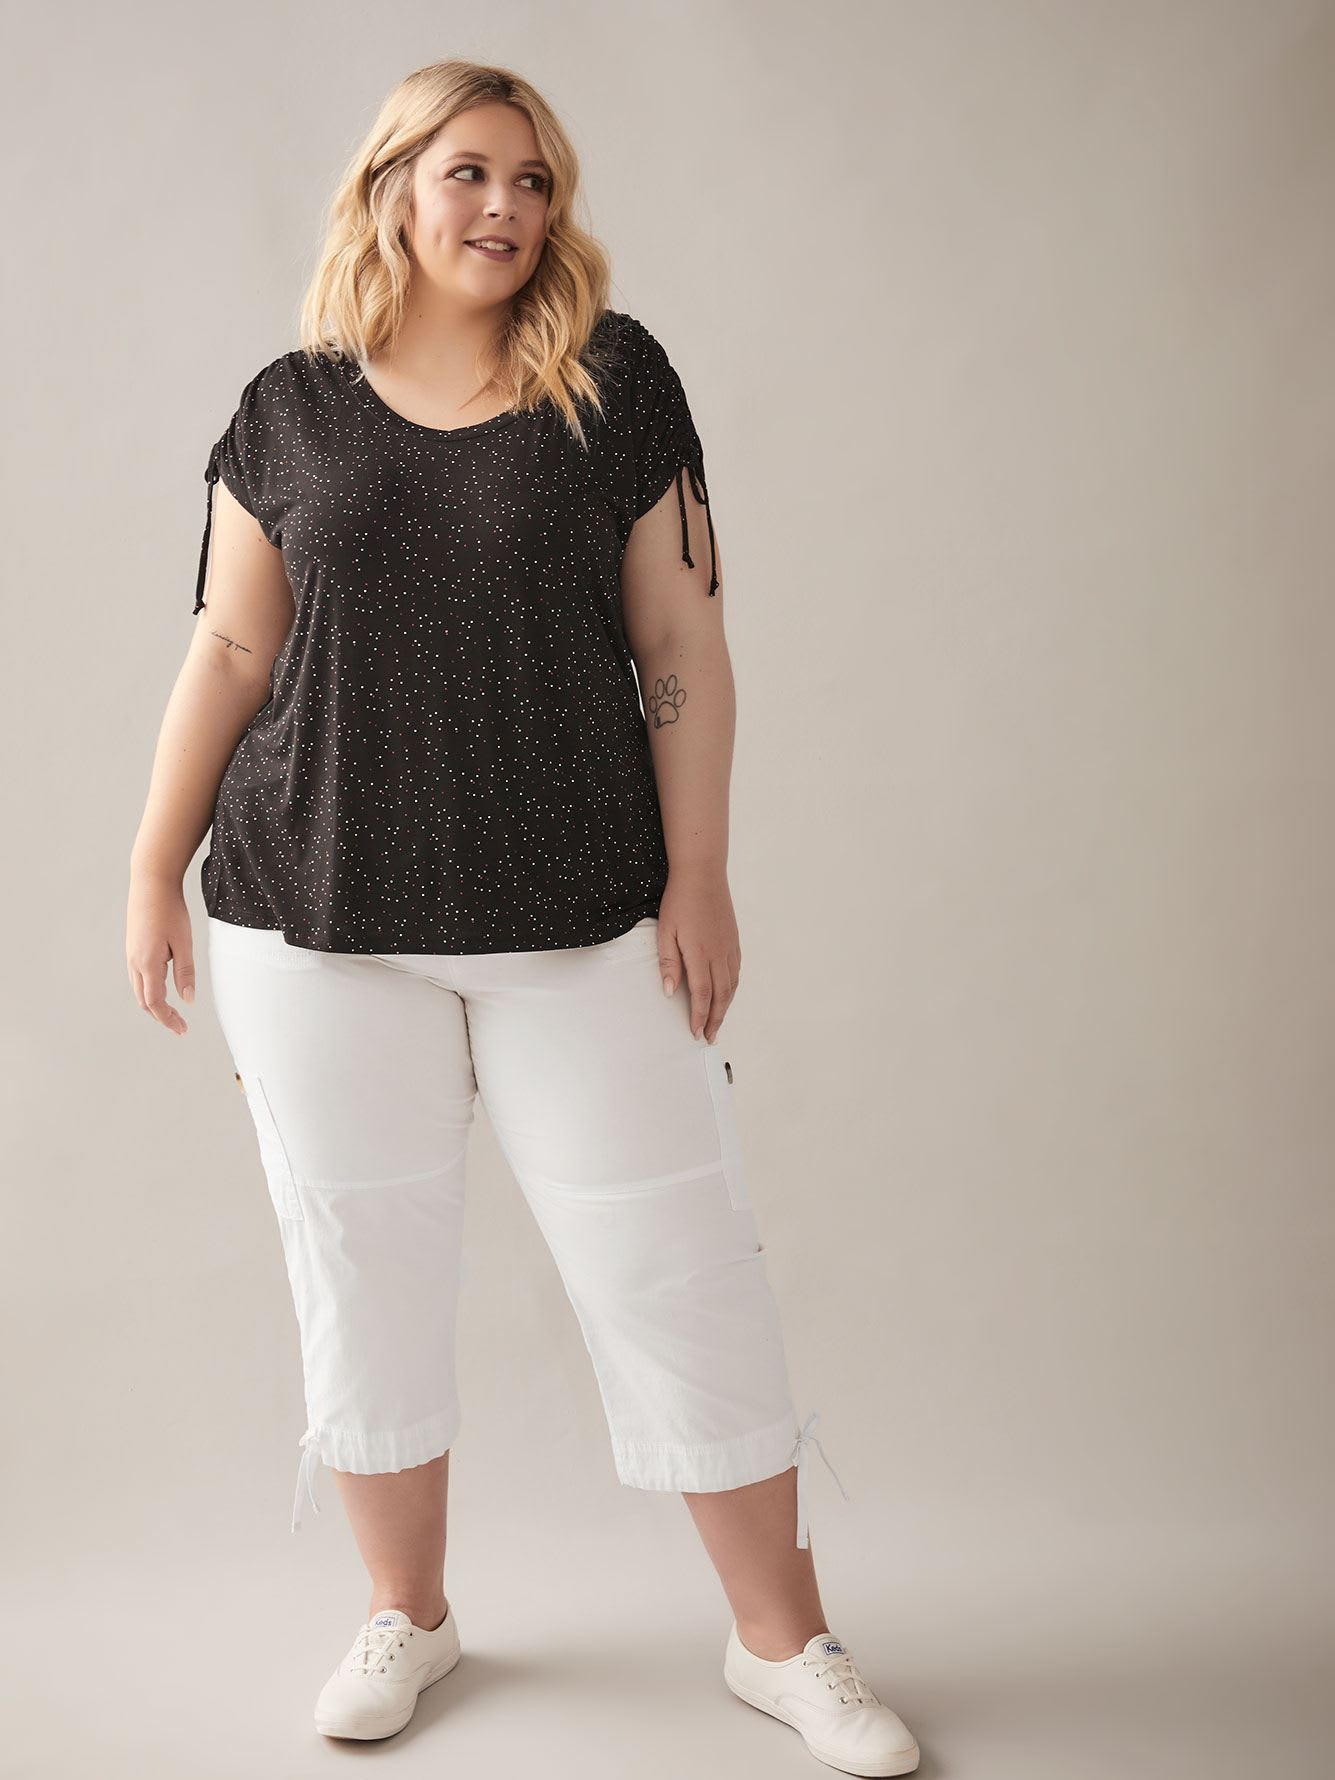 Shirred Shoulder Swing Top - In Every Story